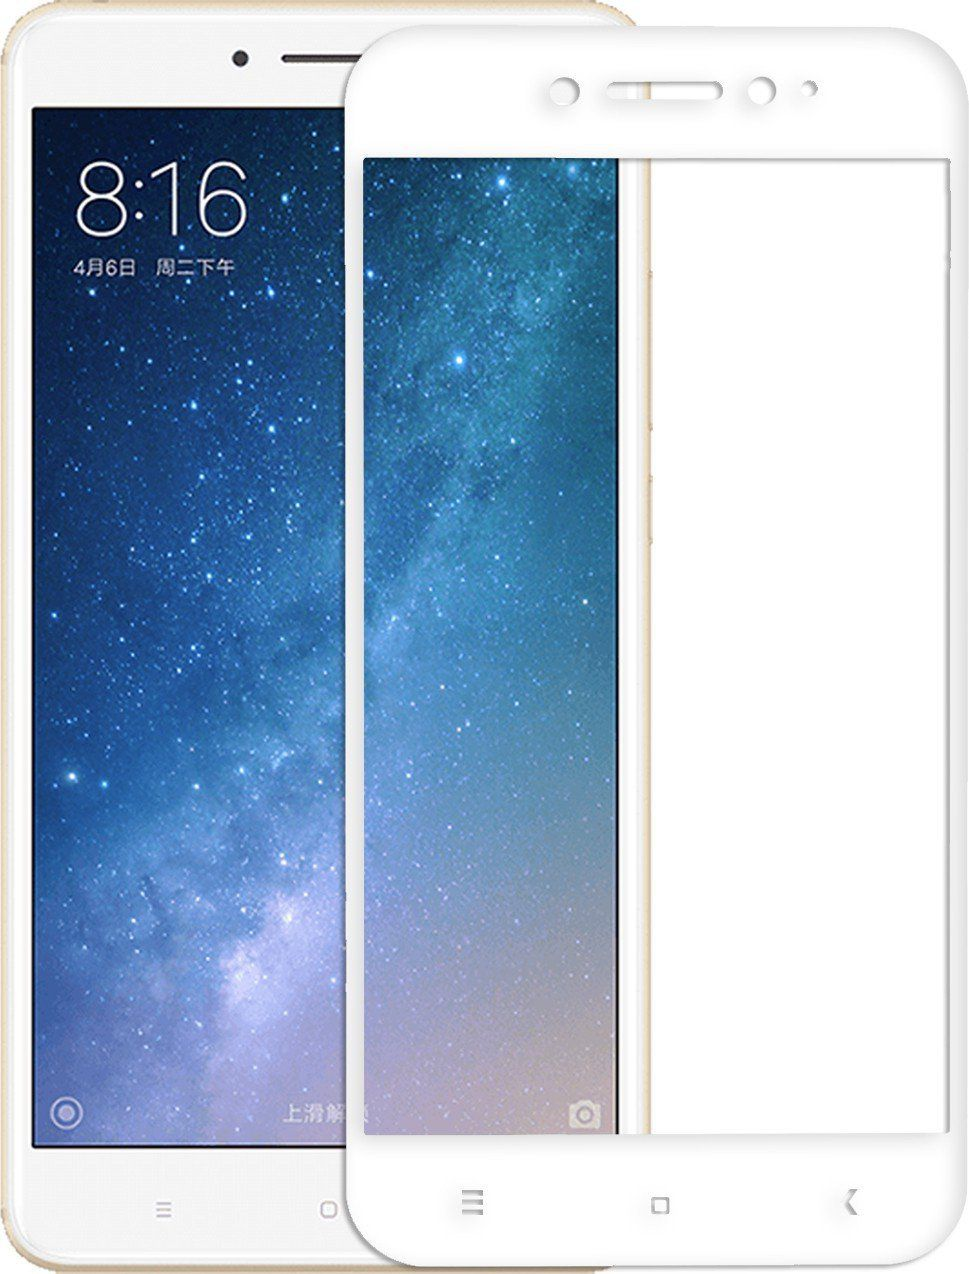 791480295b9 XIAOMI MI MAX 2 Tempered Glass Screen Guard By Hupshy - Mobile Screen  Guards Online at Low Prices